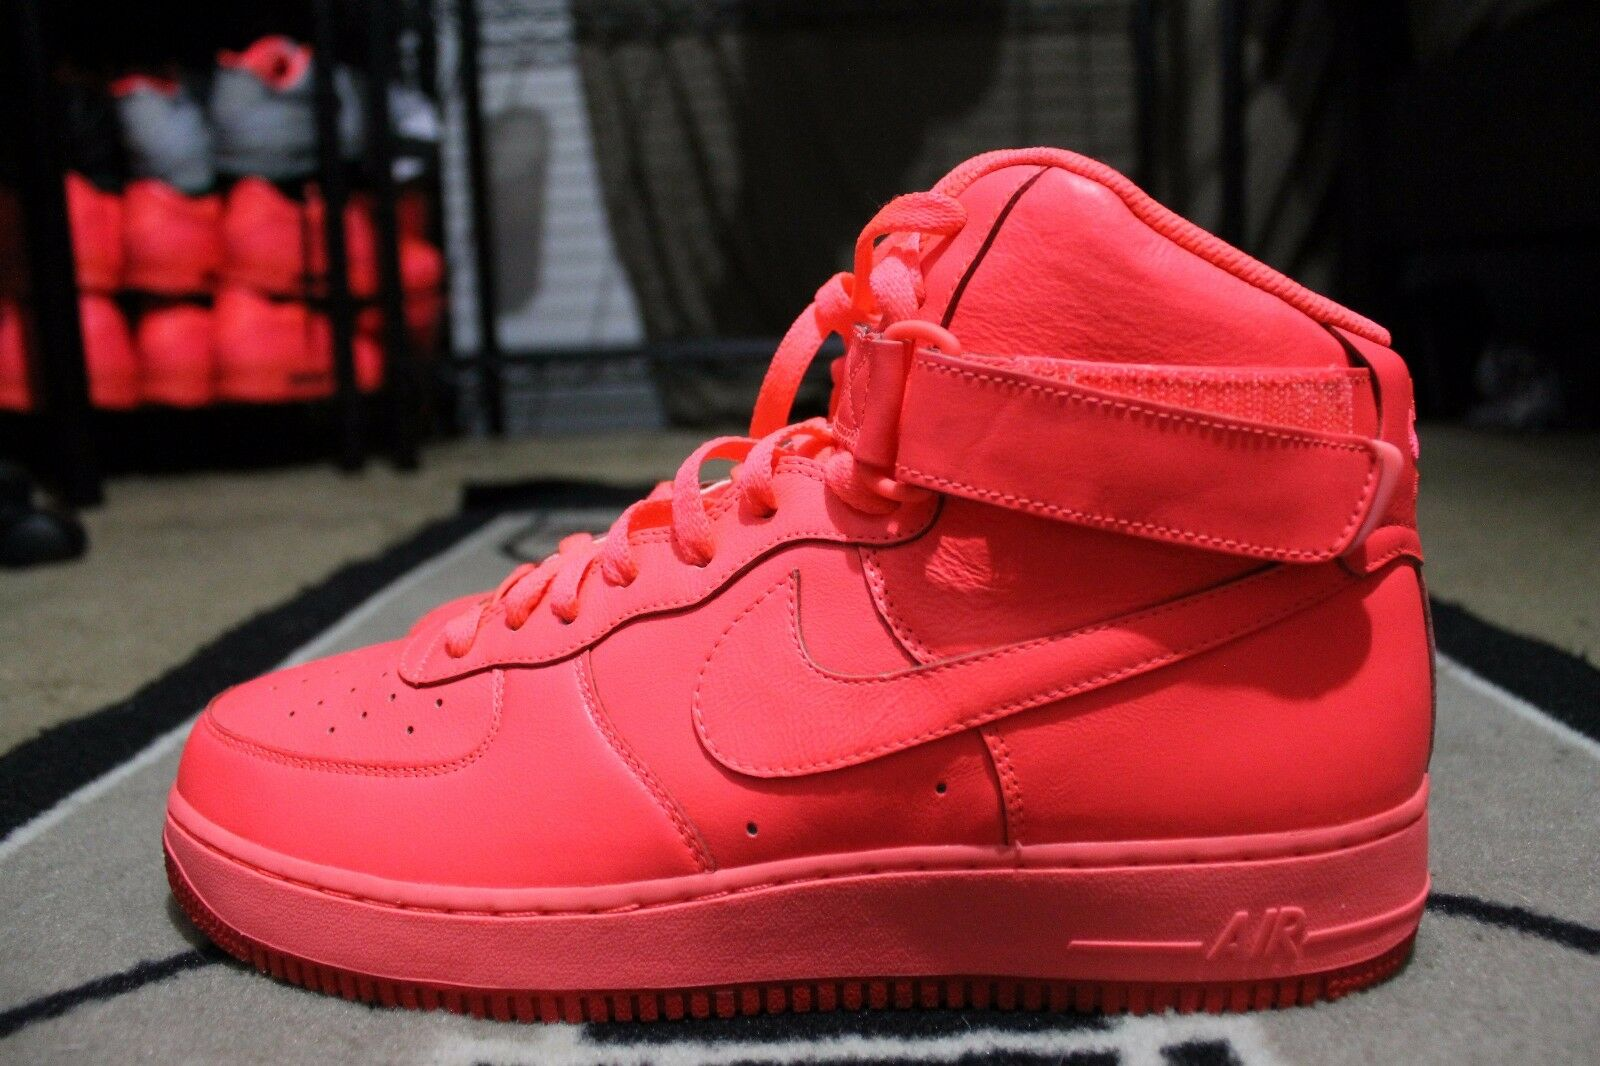 Nuovo documento nike air force one 1 - 44 solare rosa rossa